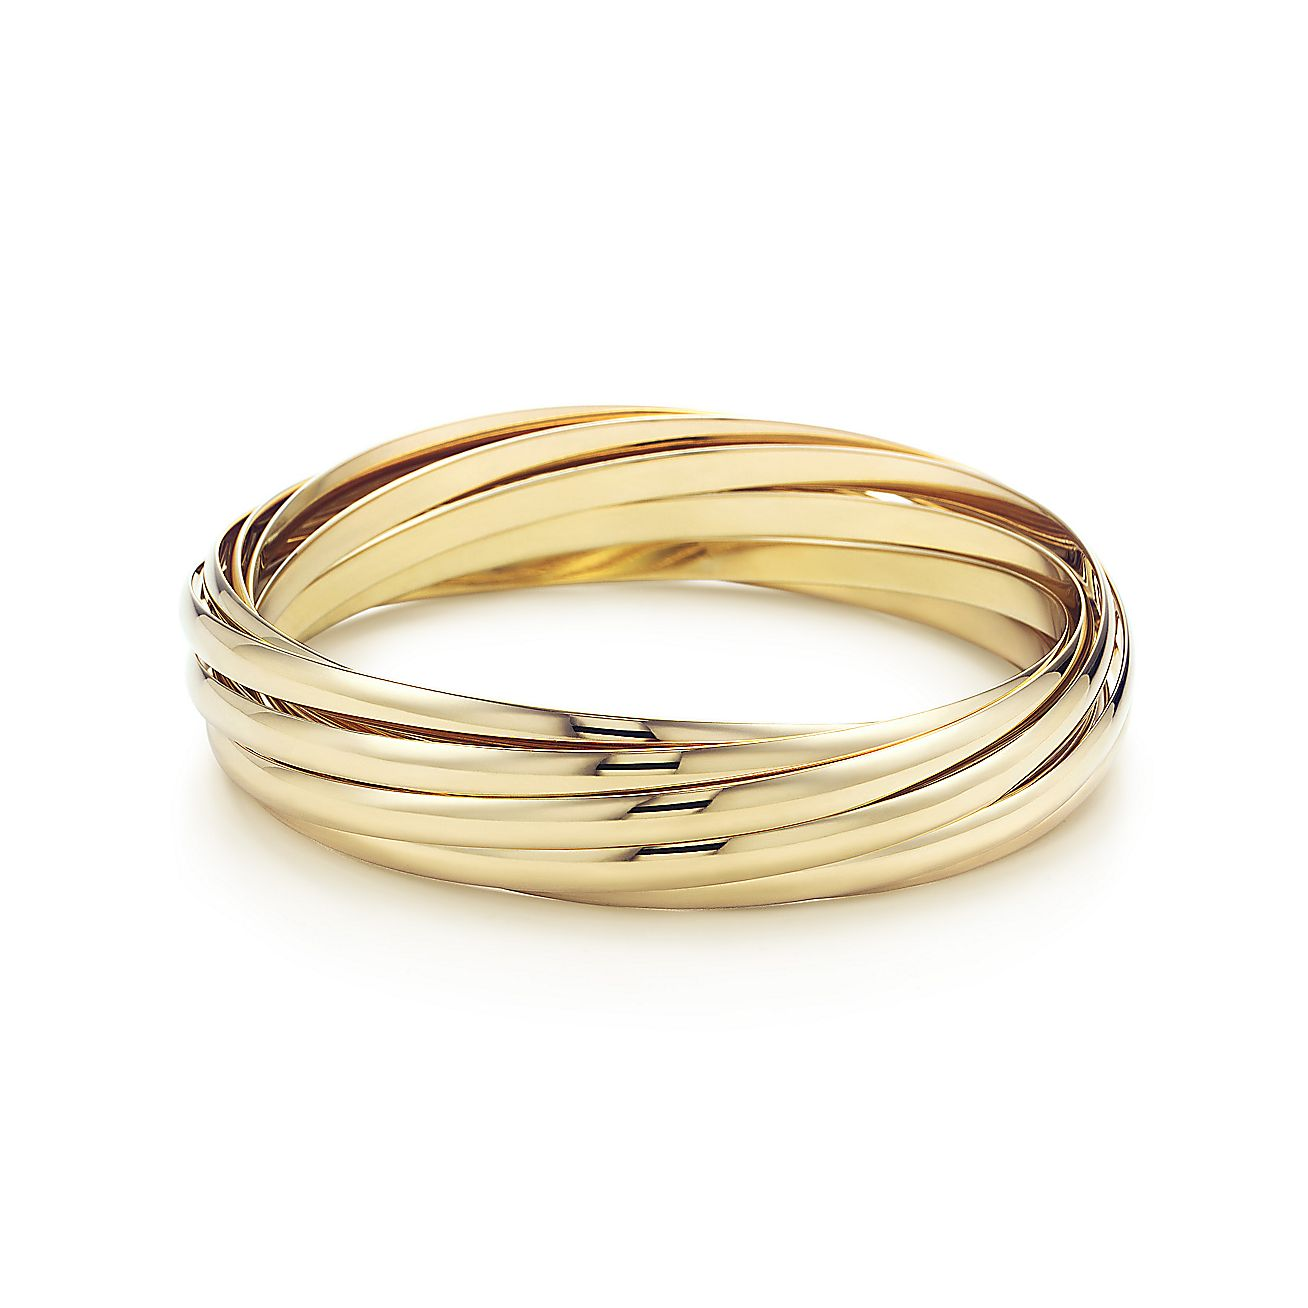 Paloma's Calife:Bangle